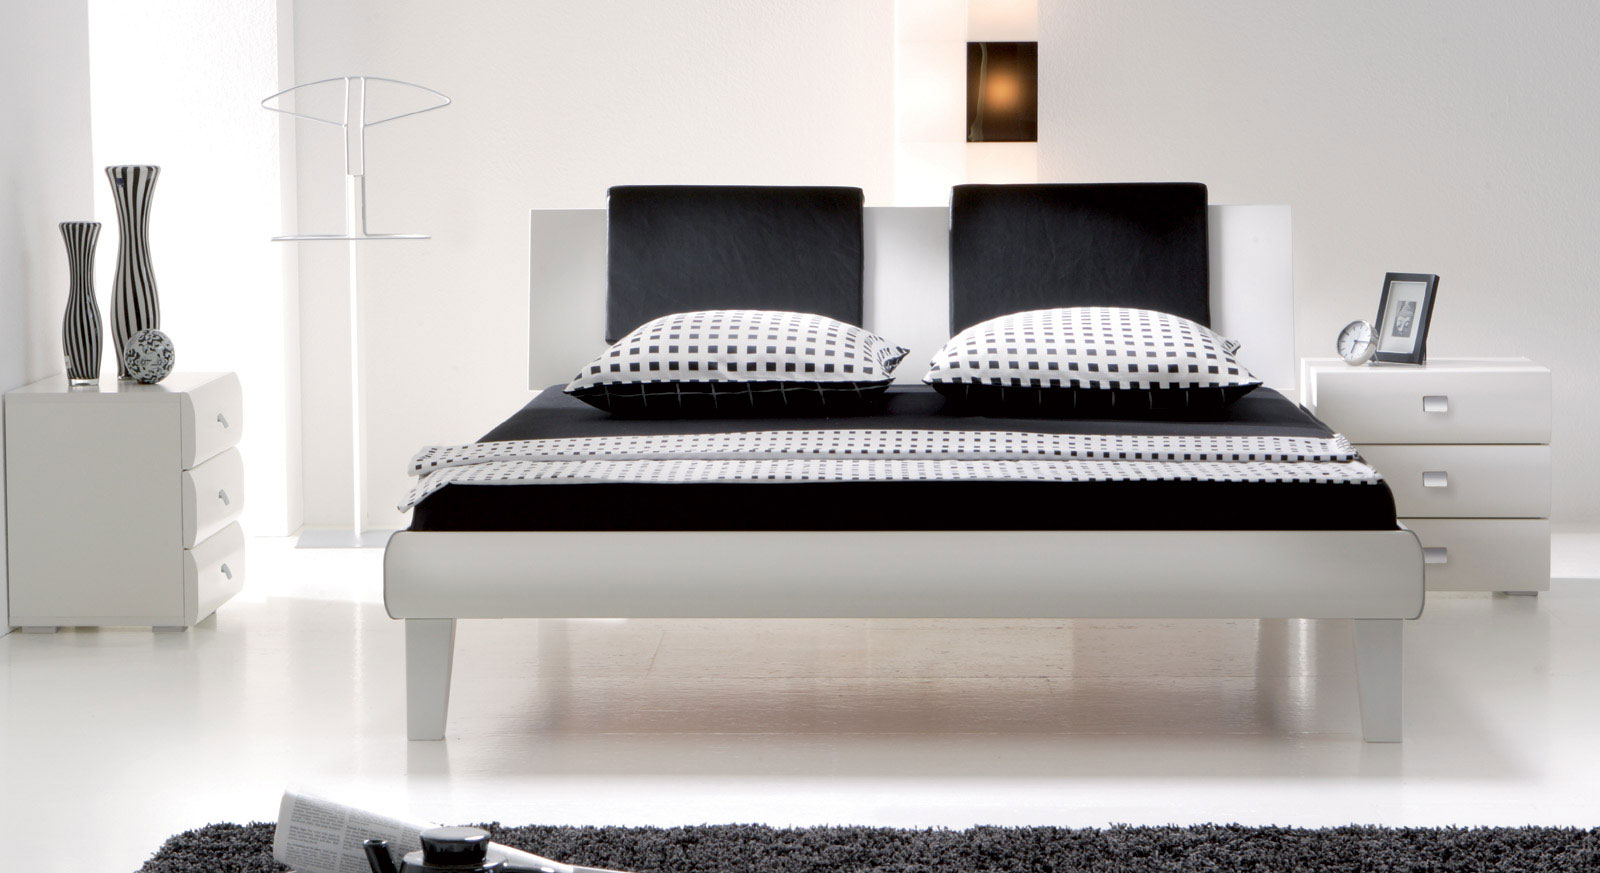 weies bett 140x200 gnstig bett m breit eyesopenco genial weies bett x gnstig with weies bett. Black Bedroom Furniture Sets. Home Design Ideas